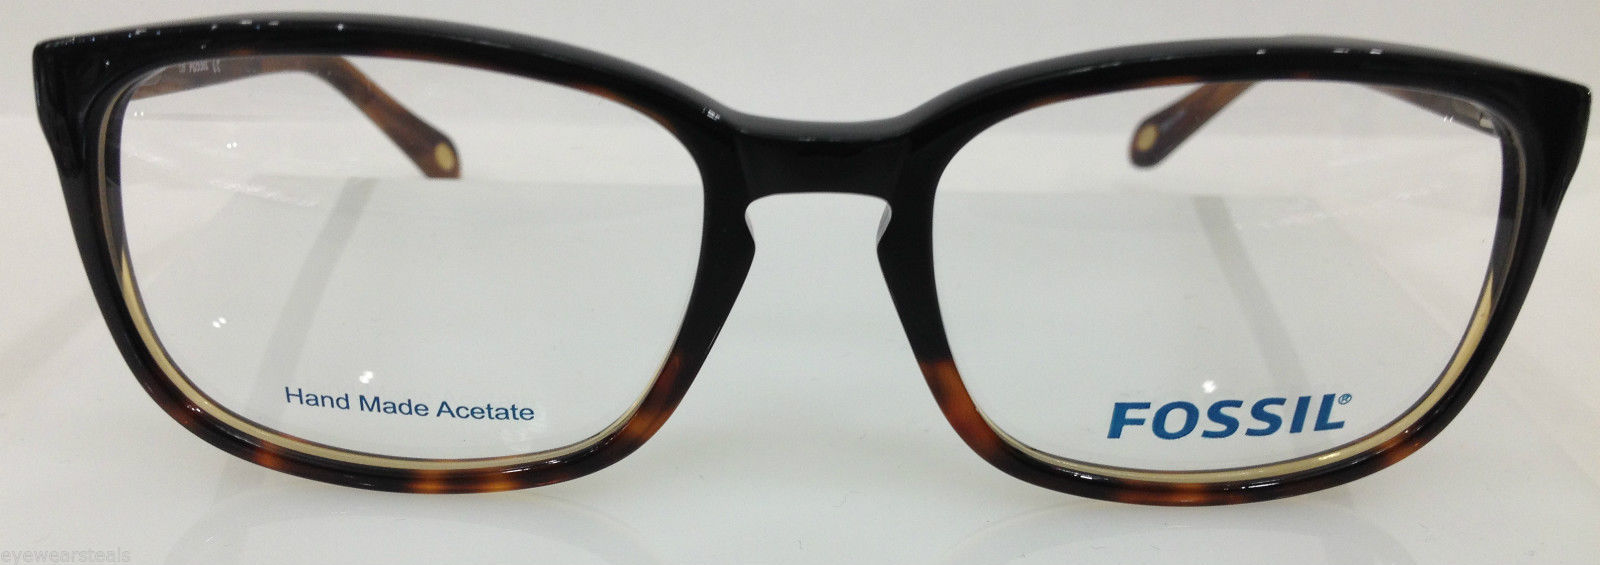 Banana Republic Eyeglass Frames Parts : Fossil Eyeglasses: 1 customer review and 27 listings